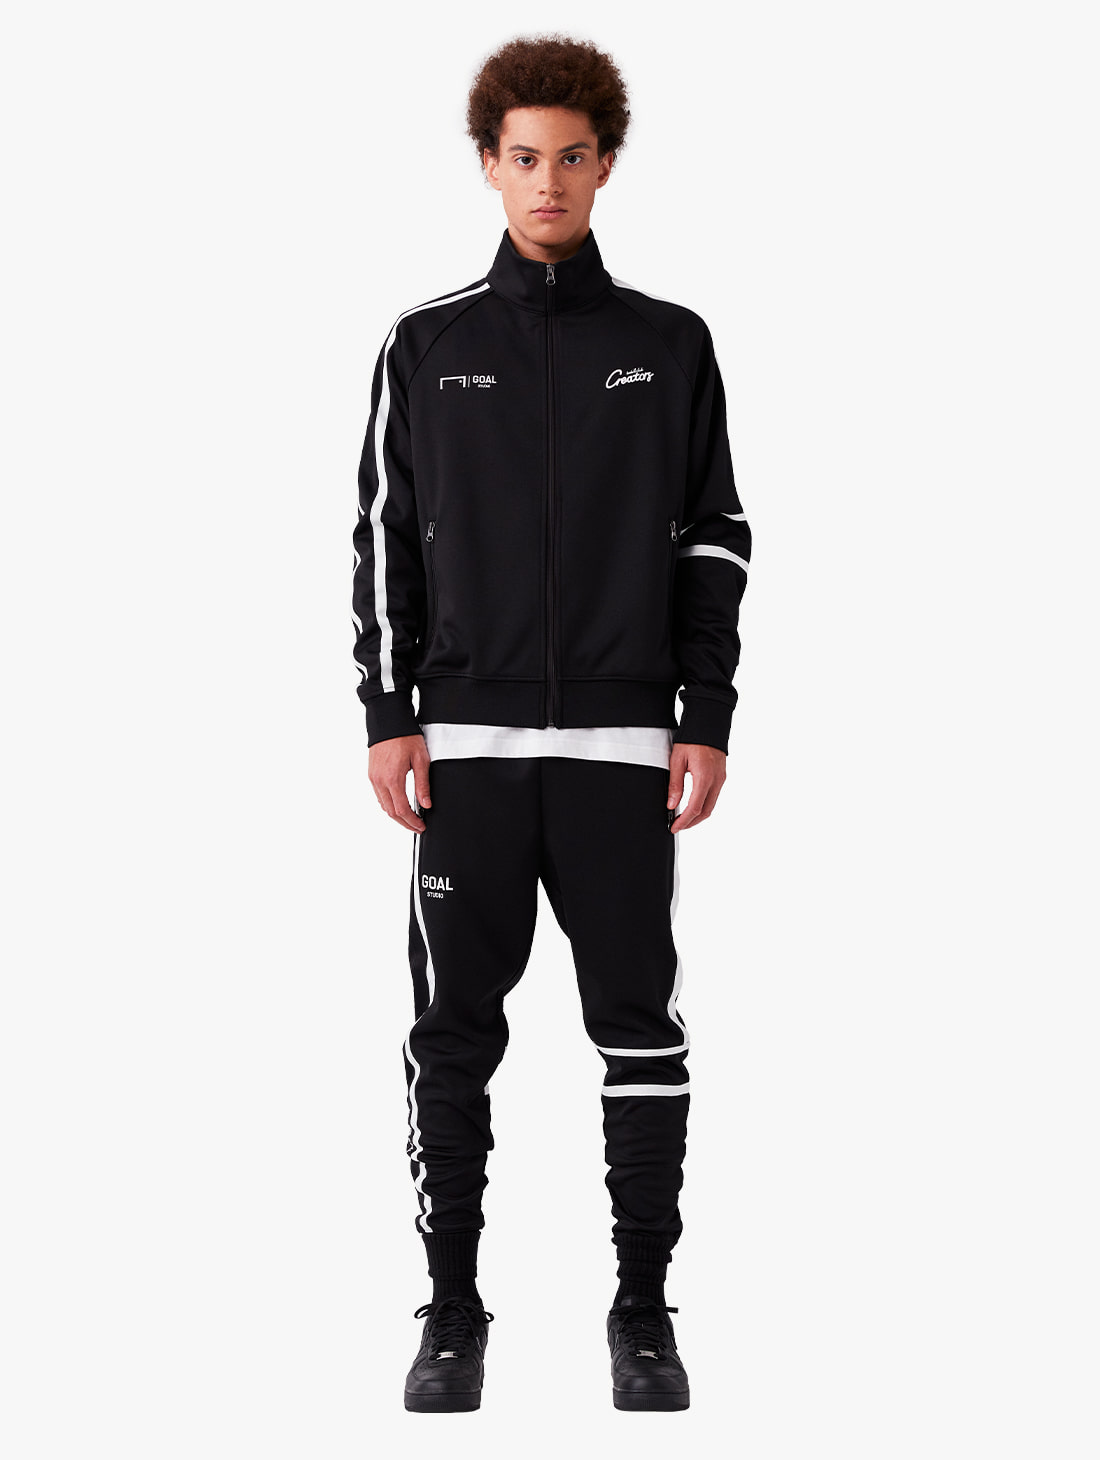 GOALSTUDIO [10% OFF] CFC TRACK ZIP-UP JACKET & TRACK PANTS SET